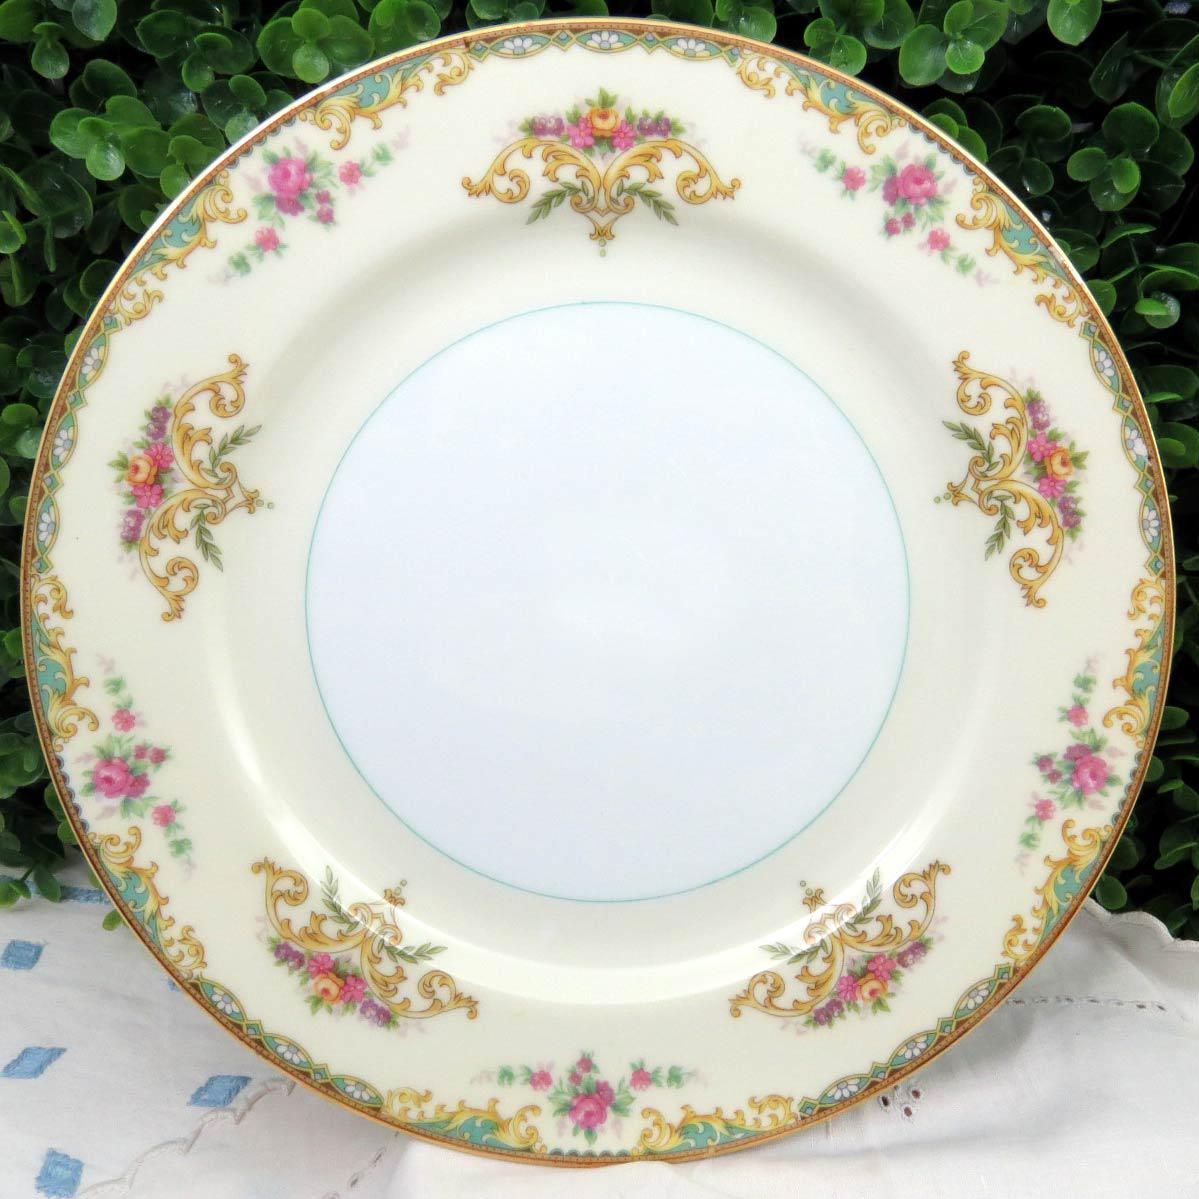 Mismatched Vintage Dinner Plates - Set of 8 - Image 4 of 11 & Mismatched Vintage Dinner Plates - Set of 8 | Chairish